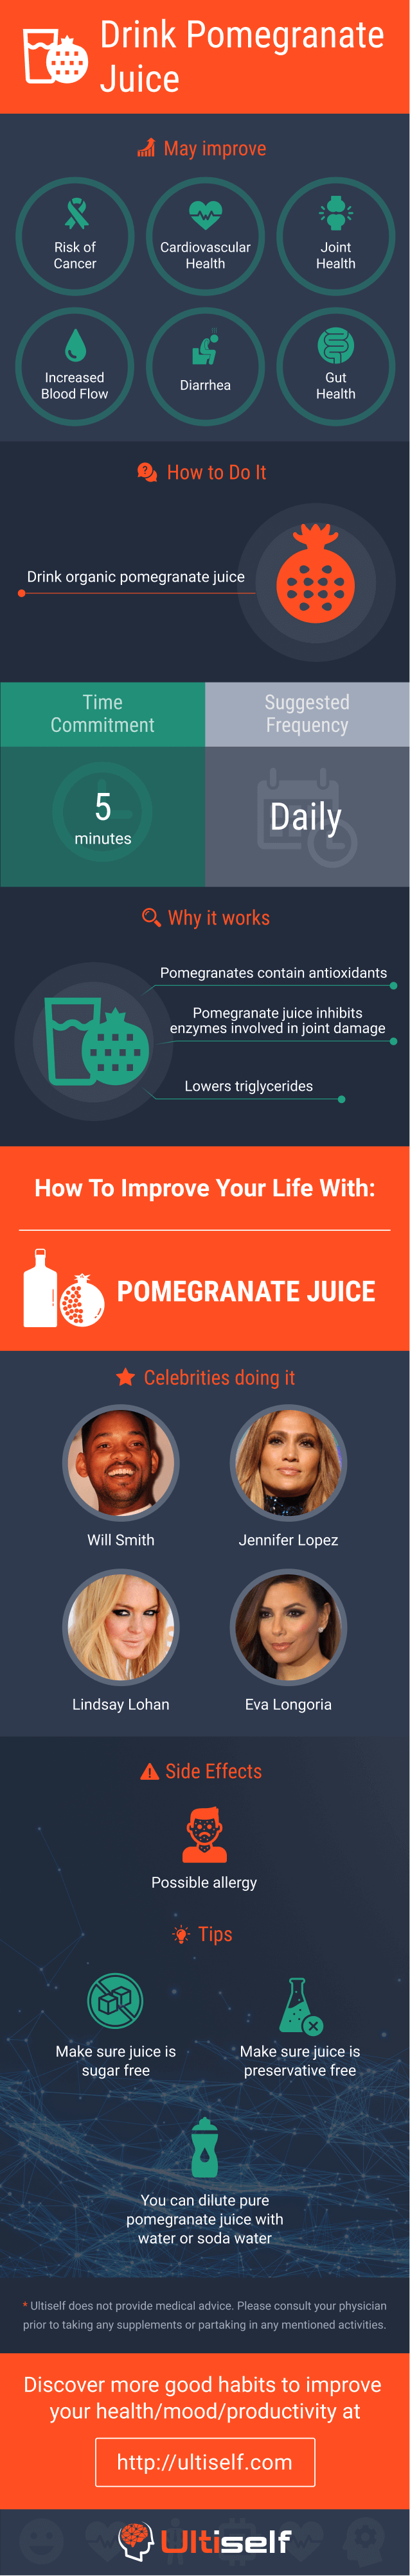 Drink Pomegranate Juice infographic